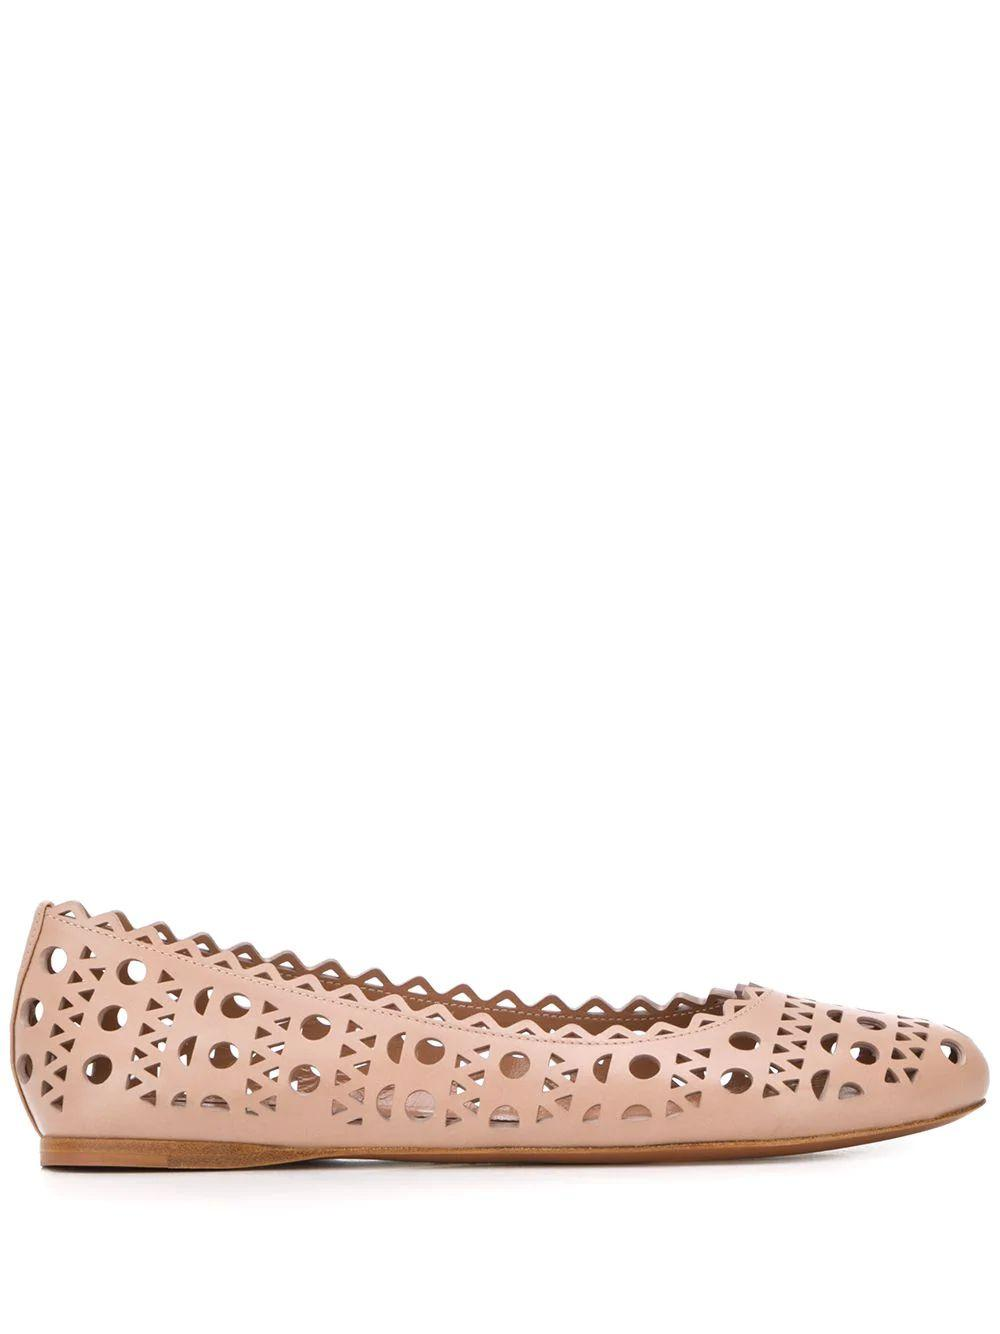 Ballet Flat With Cutouts Item # AS3F326CE77